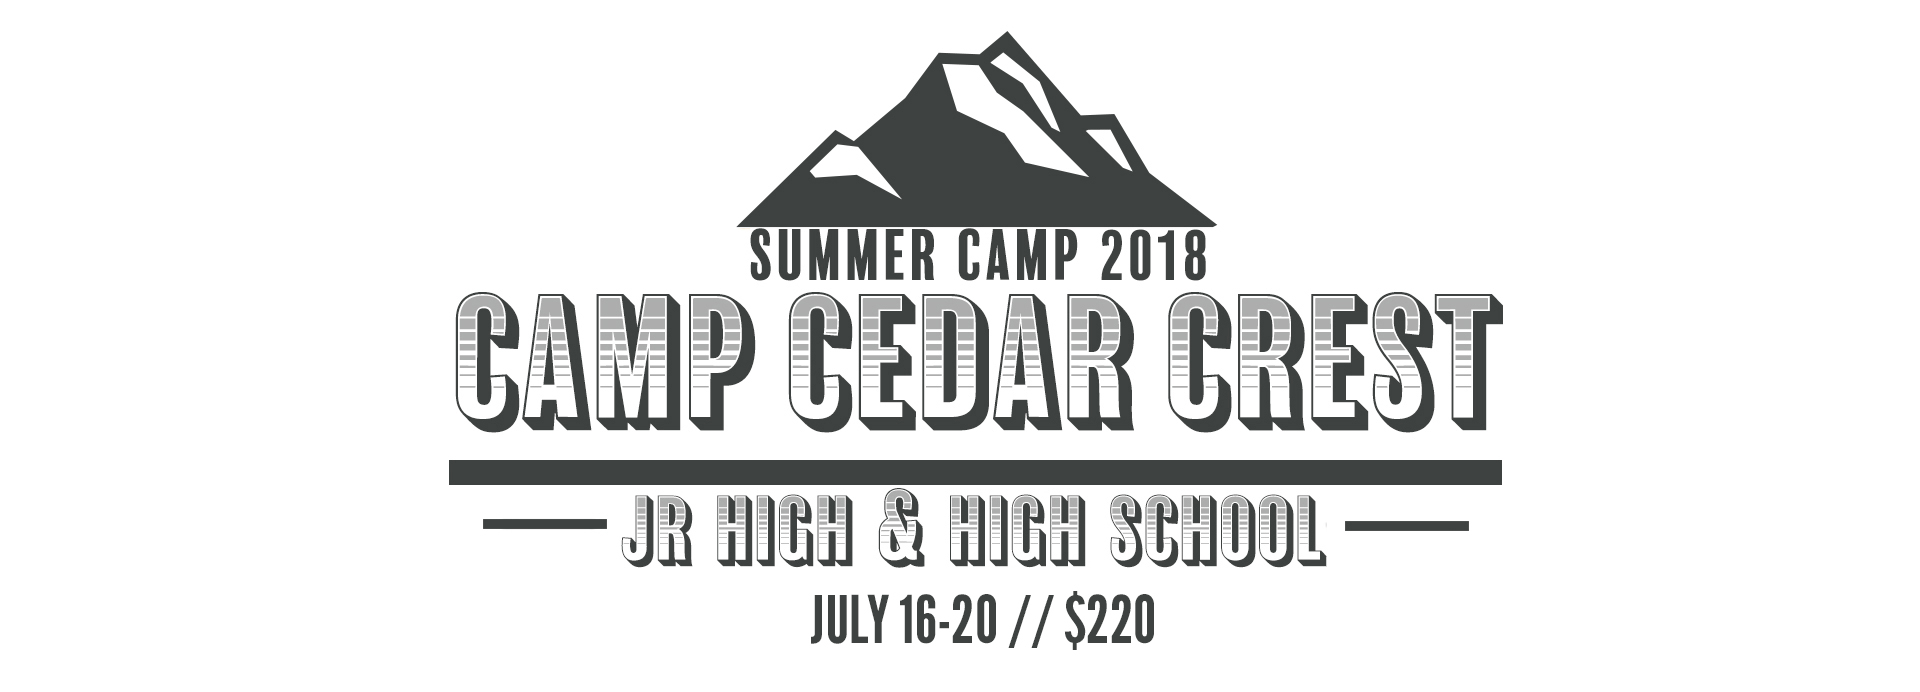 Our middle school and high school students are headed to Camp at Cedar Crest in the San Bernadino mountains! At our summer camps, youth have the opportunity to disconnect from the distractions of daily life at home and make new connections. They get to connect with leaders, each other and most importantly -- with Jesus Christ.  Camp is July 16-20 and the cost is $220.   Click here to register